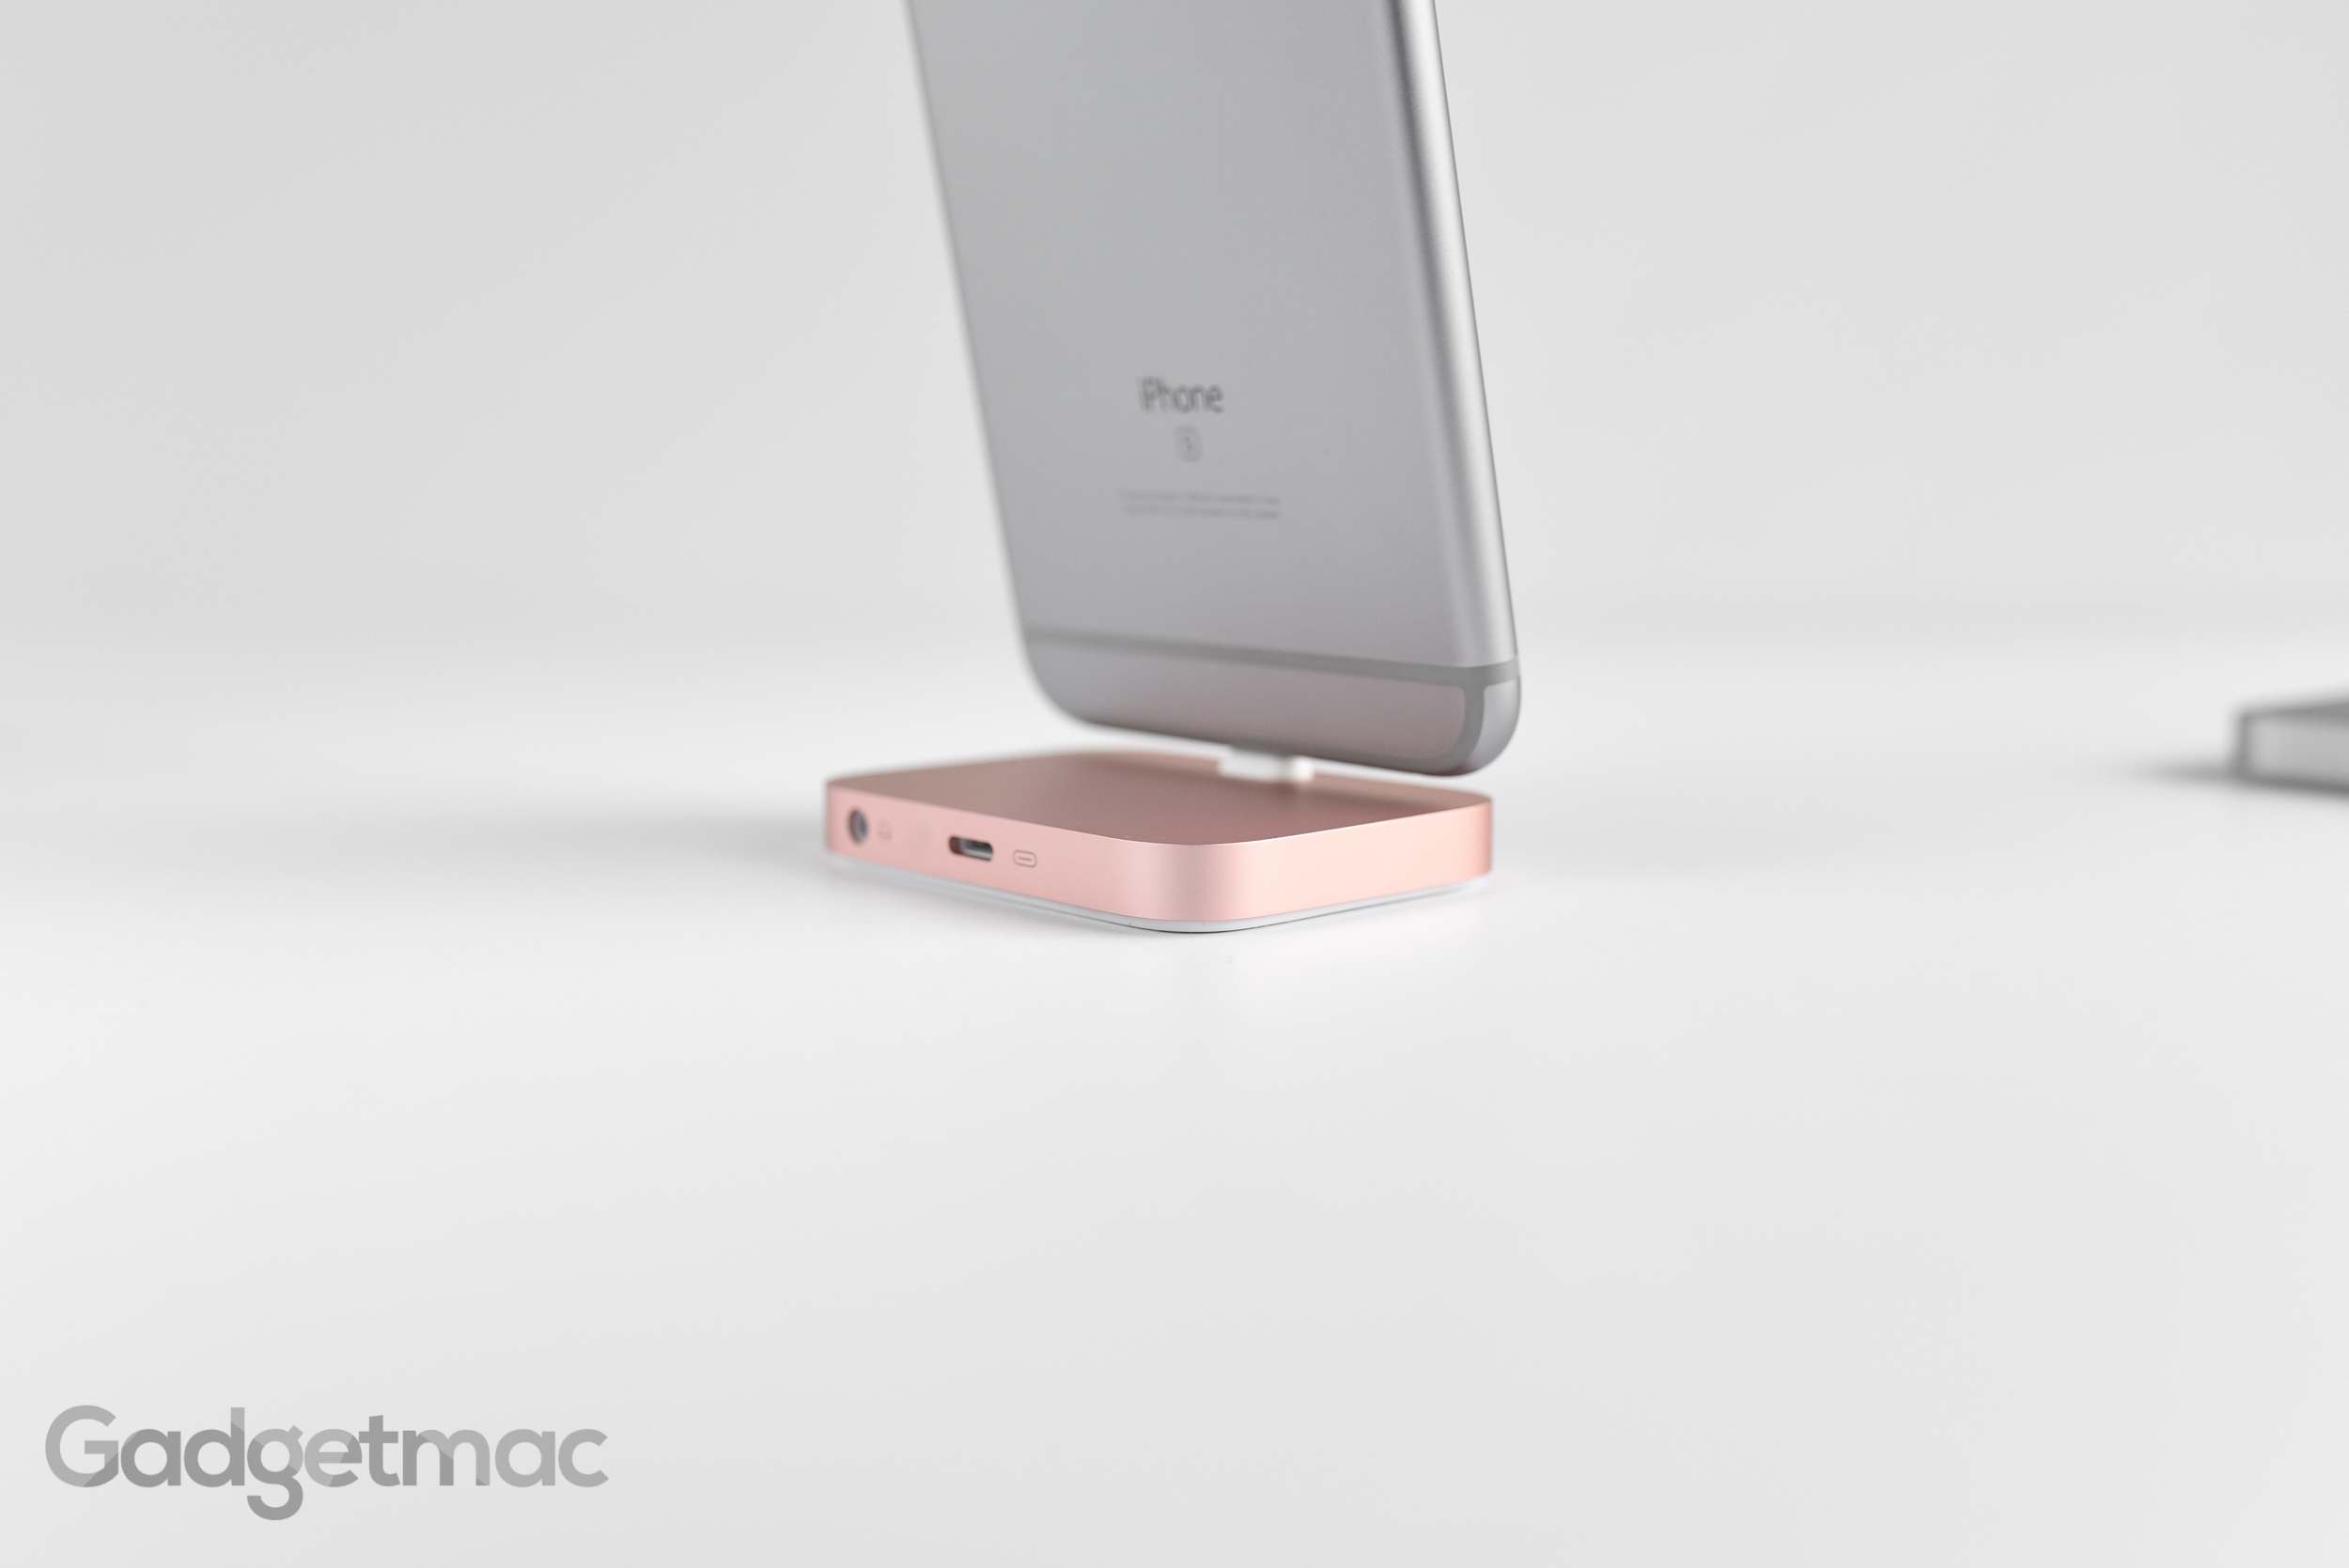 apple-aluminum-rose-gold-iphone-6s-plus-lightning-dock-back.jpg